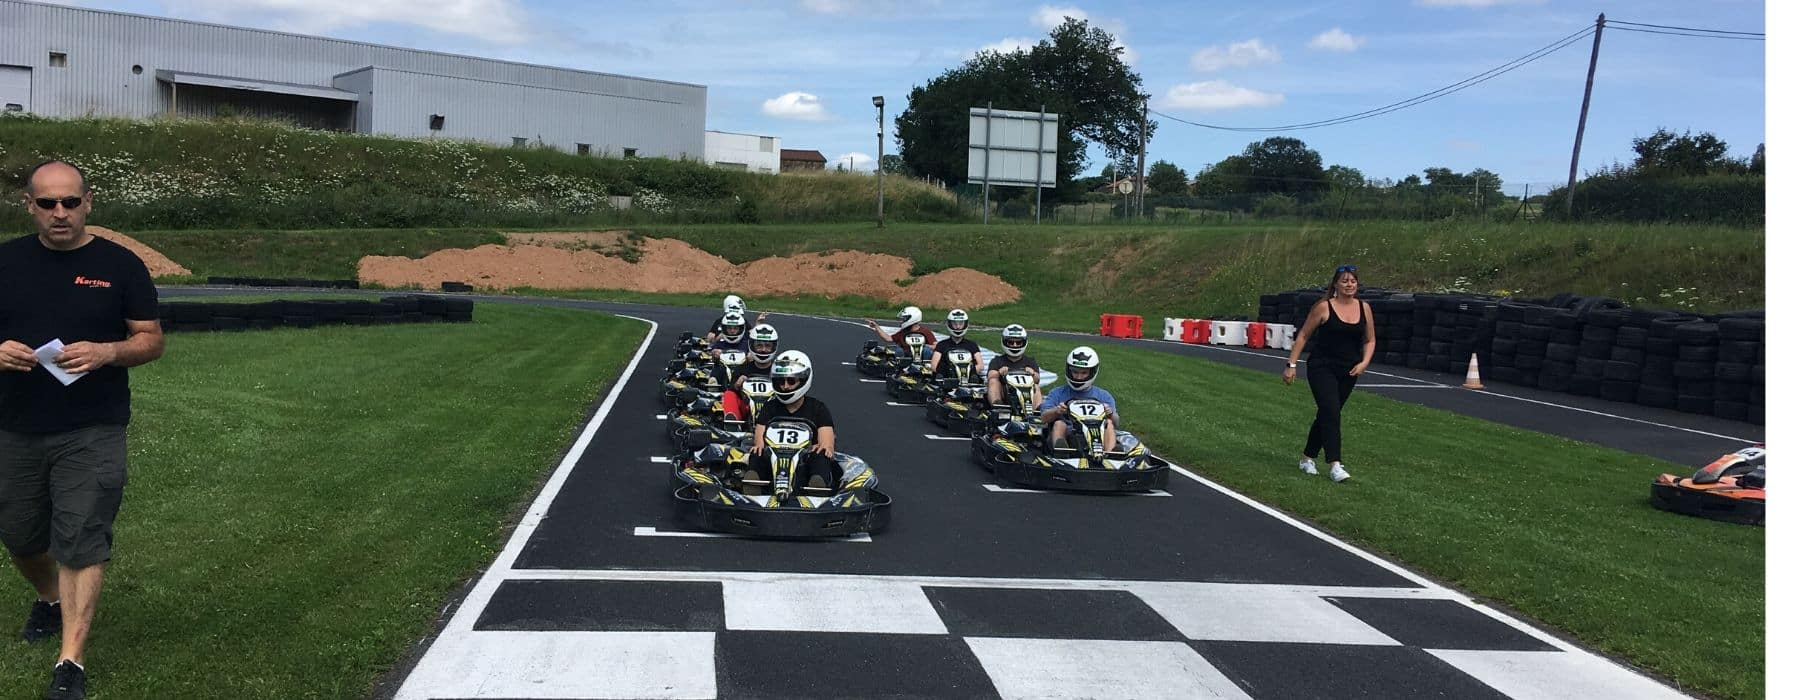 TEAM BUILDING KARTING